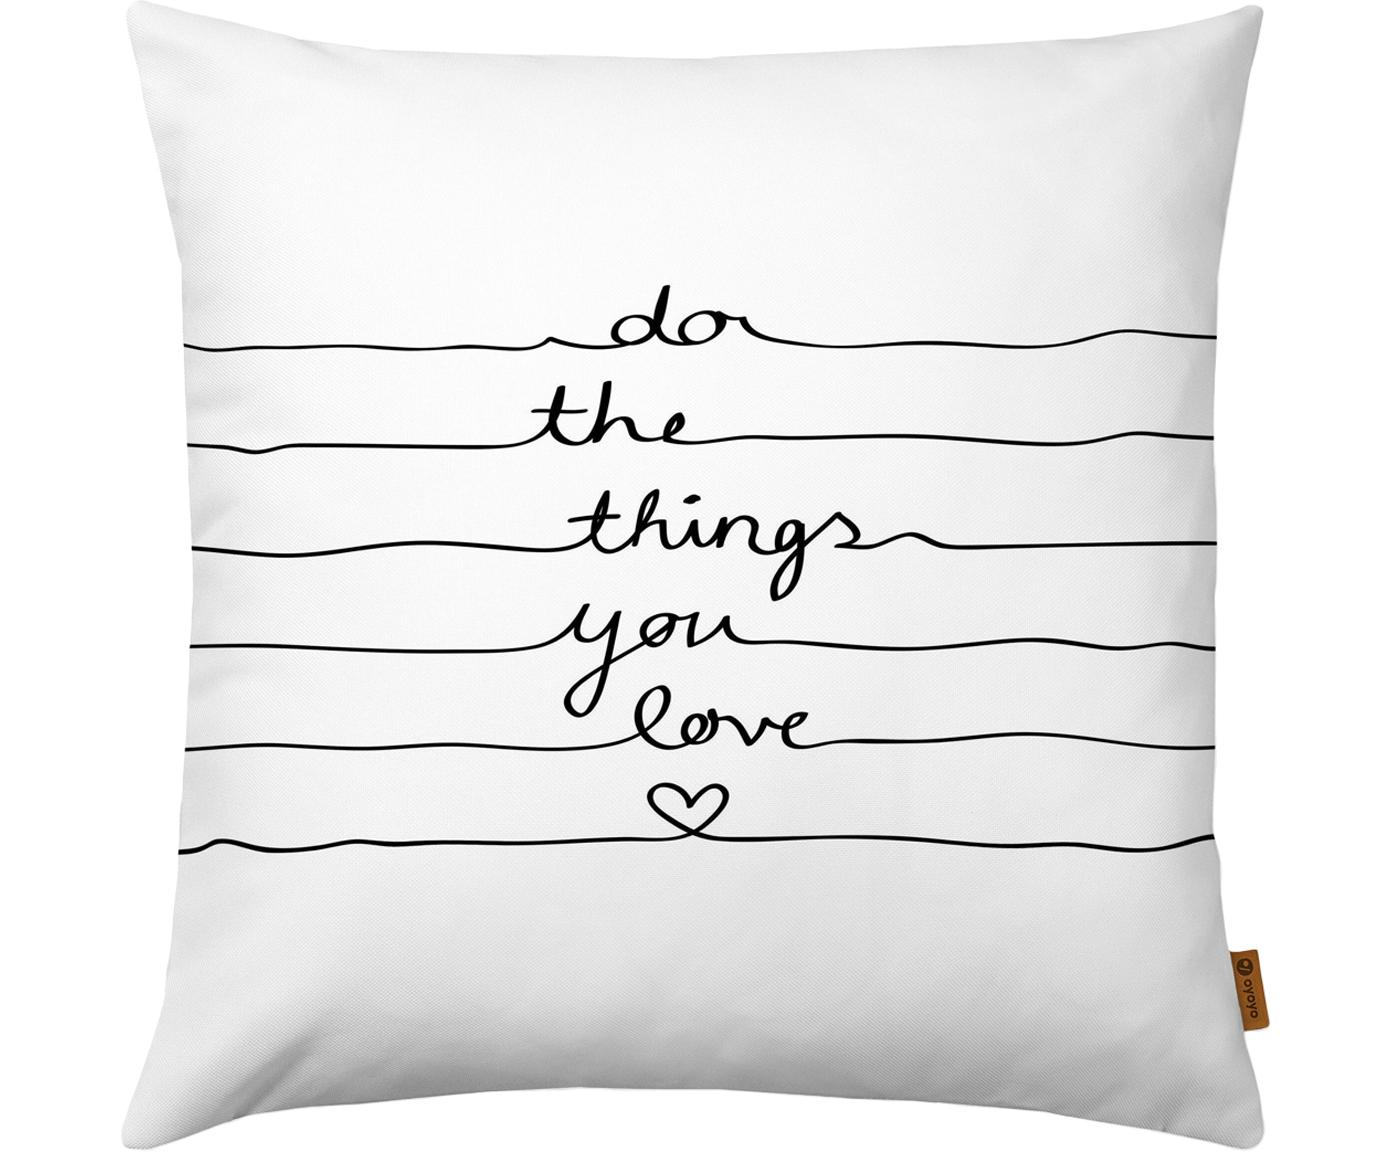 Kussenhoes Do The Things You Love met opschrift, Polyester, Wit, zwart, 40 x 40 cm